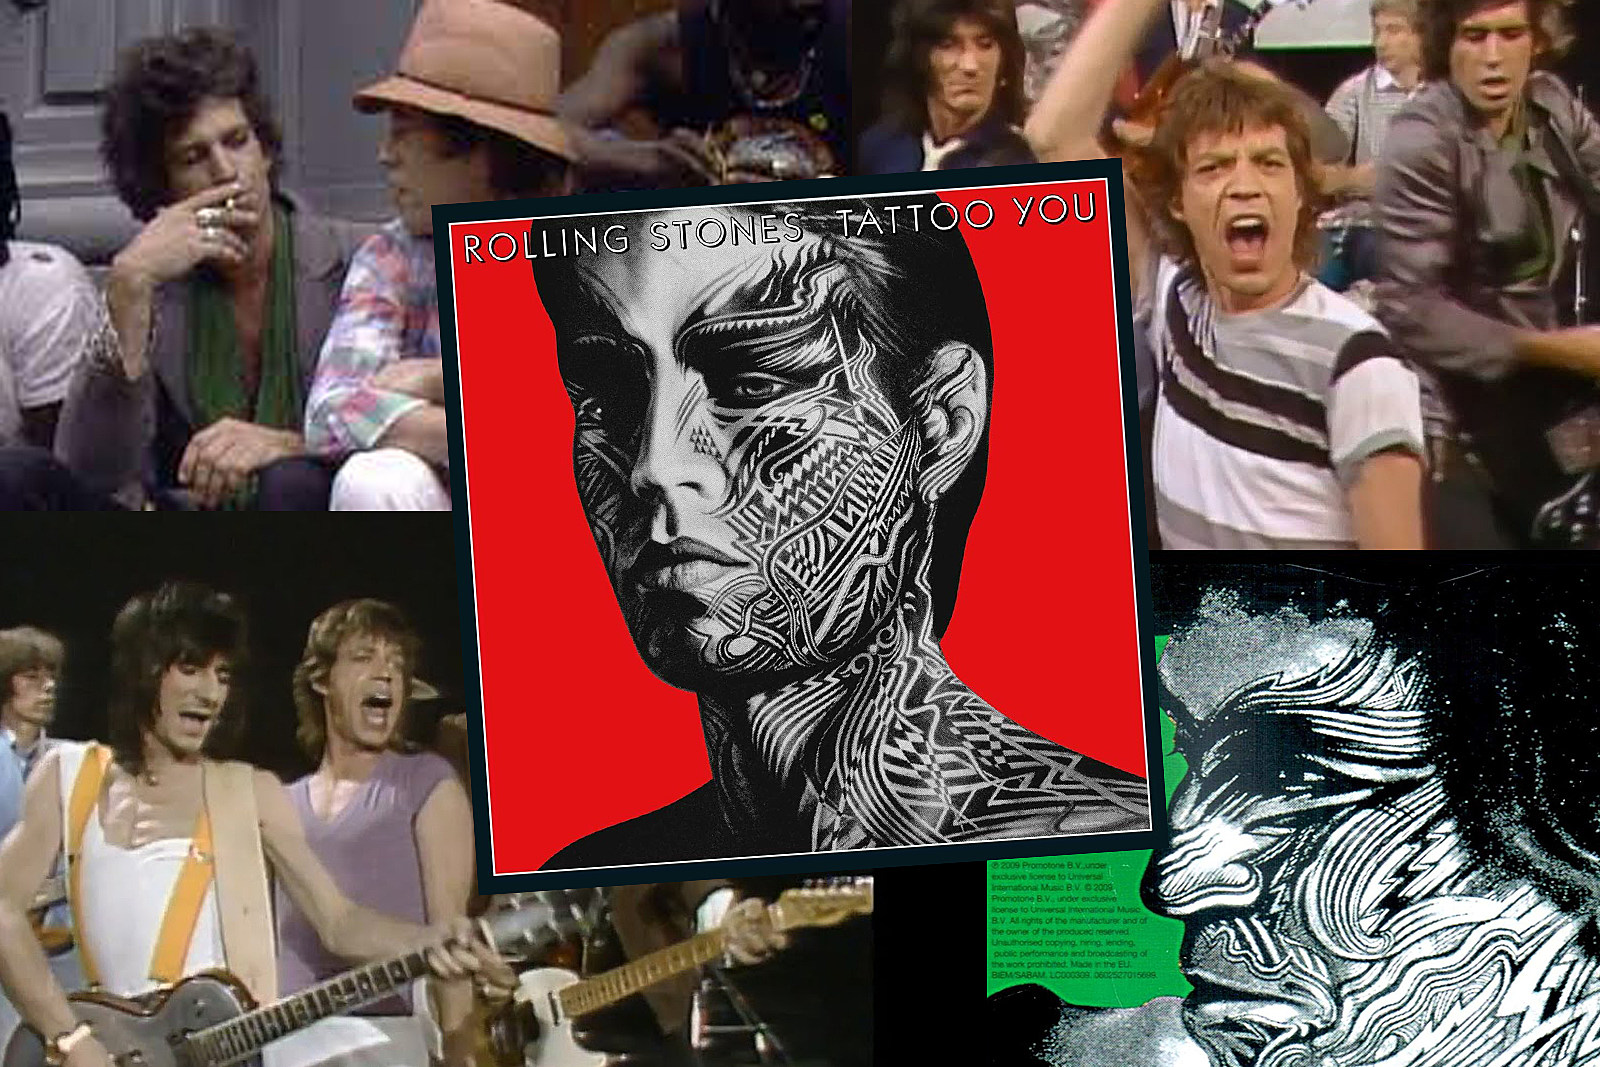 Rolling Stones' 'Tattoo You': A Track-by-Track Guide